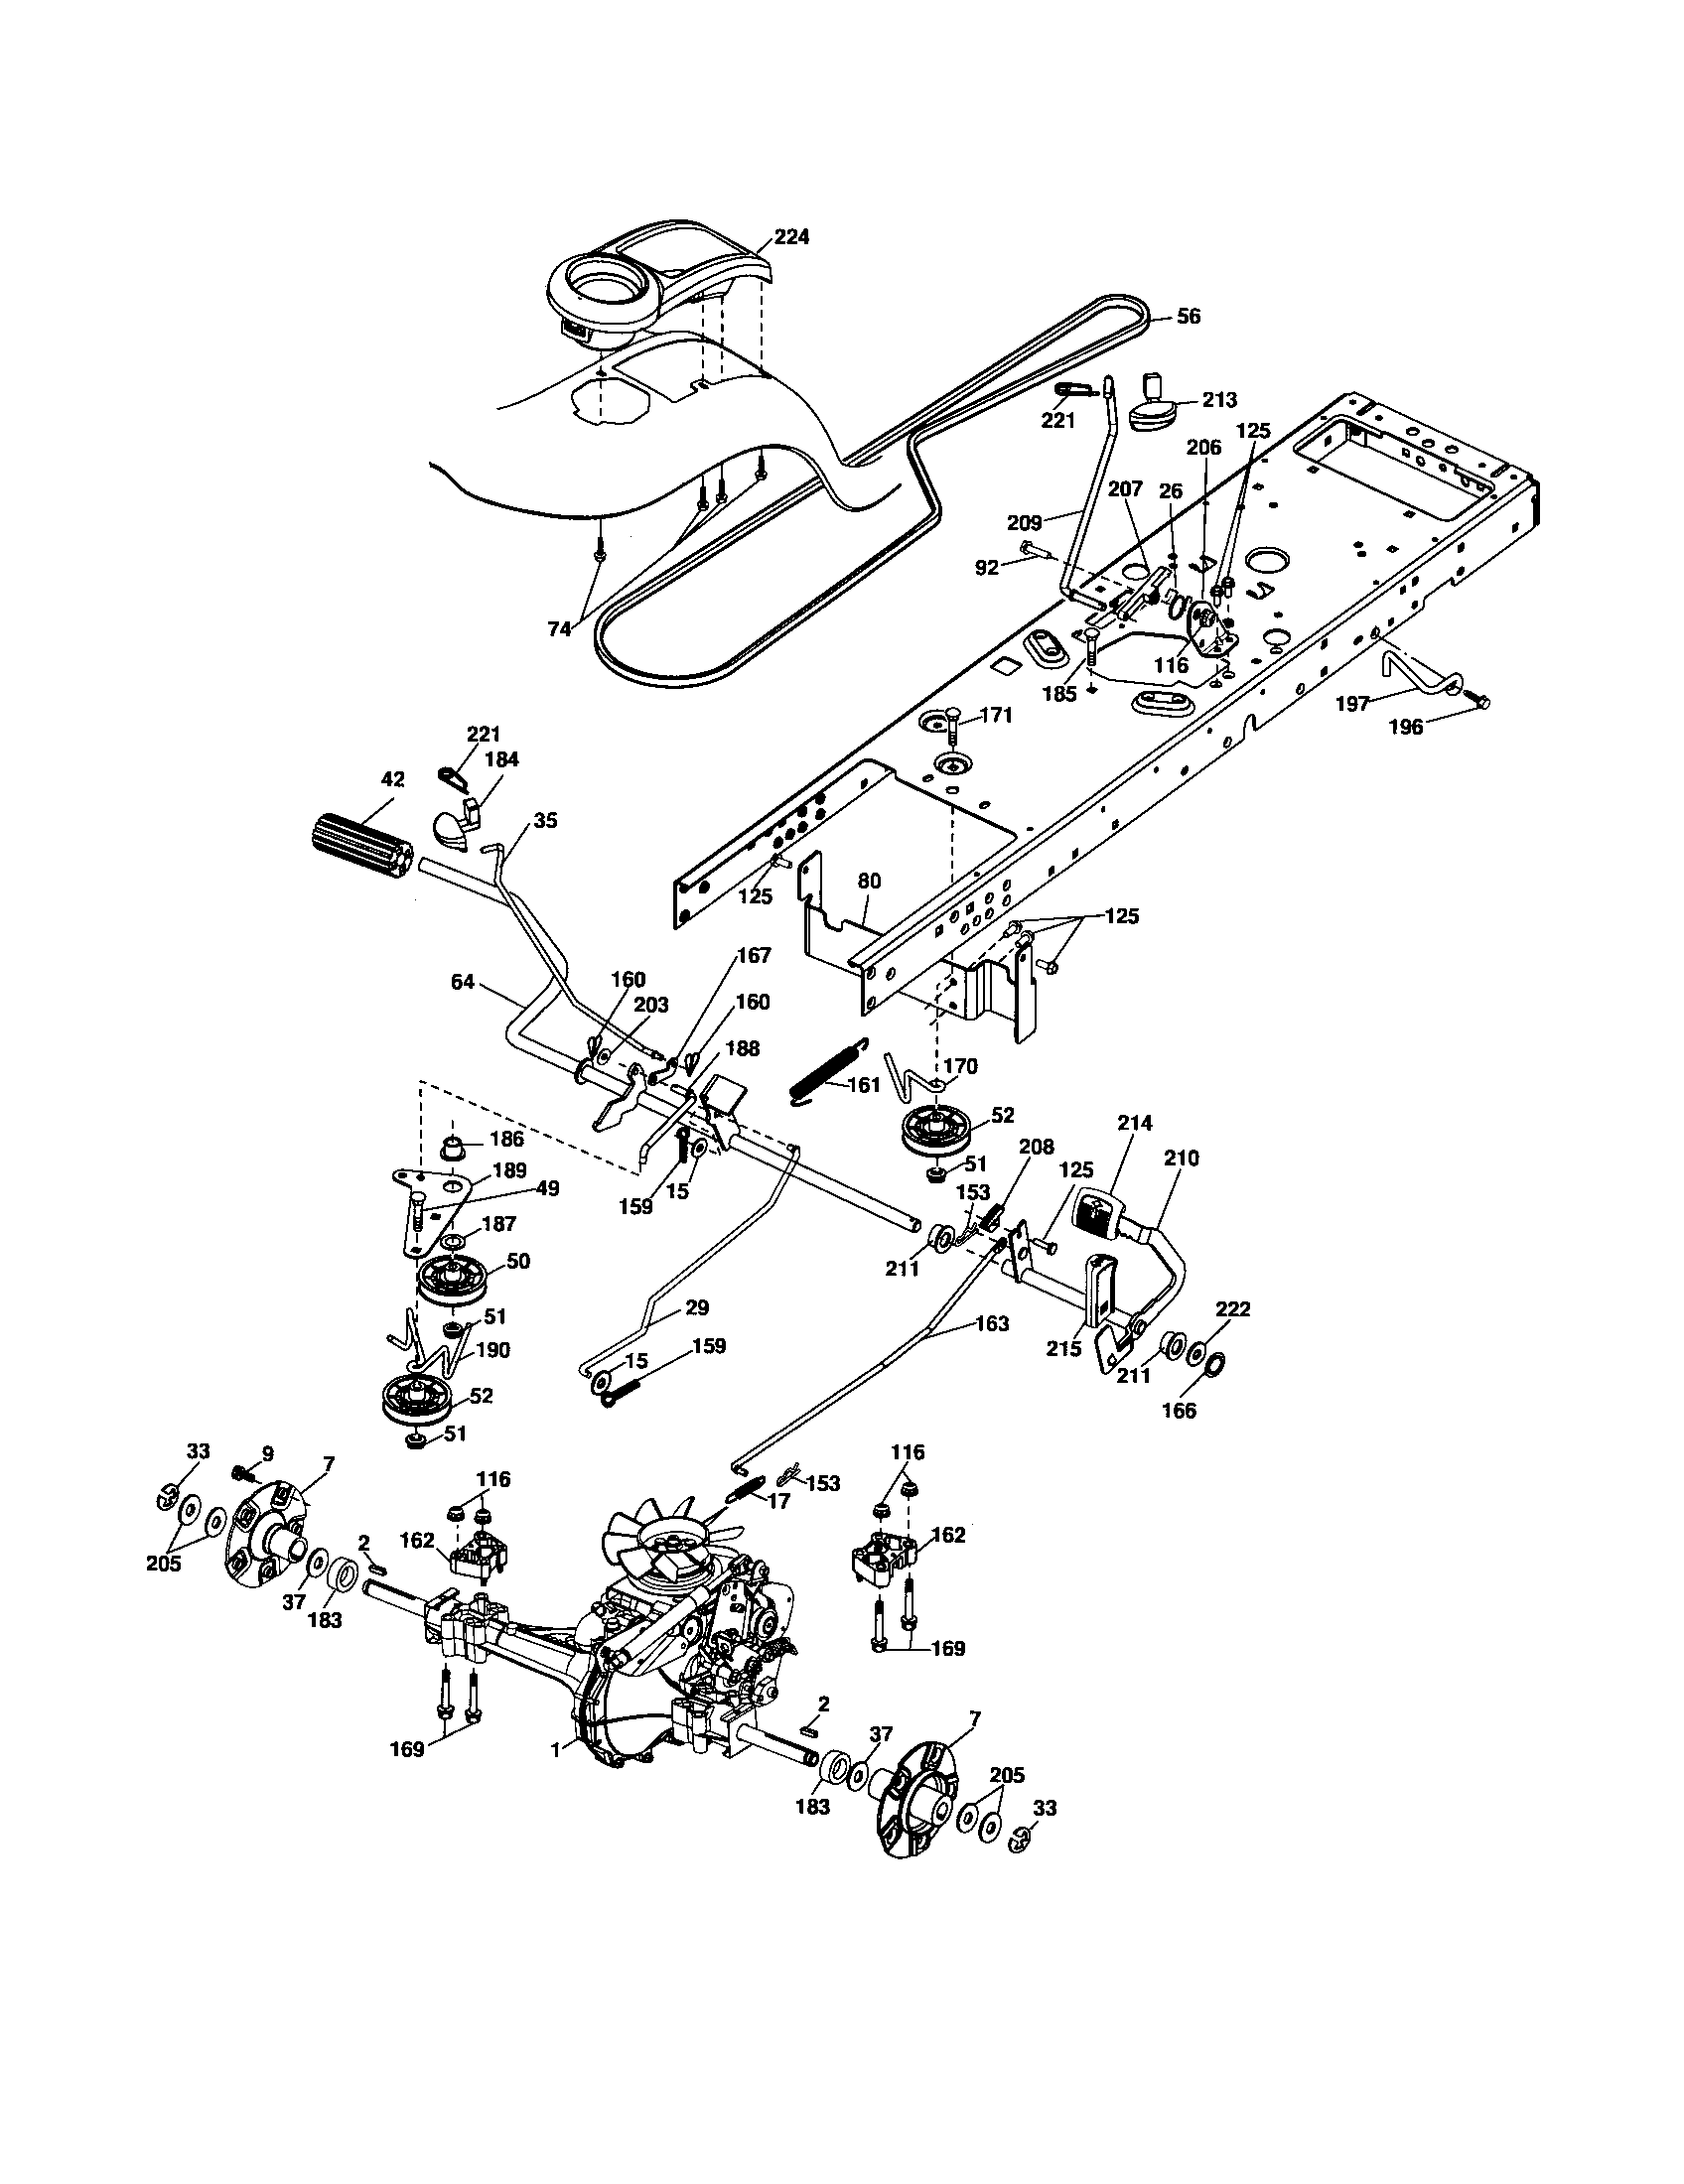 DRIVE Diagram & Parts List for Model 96042000700 Poulan